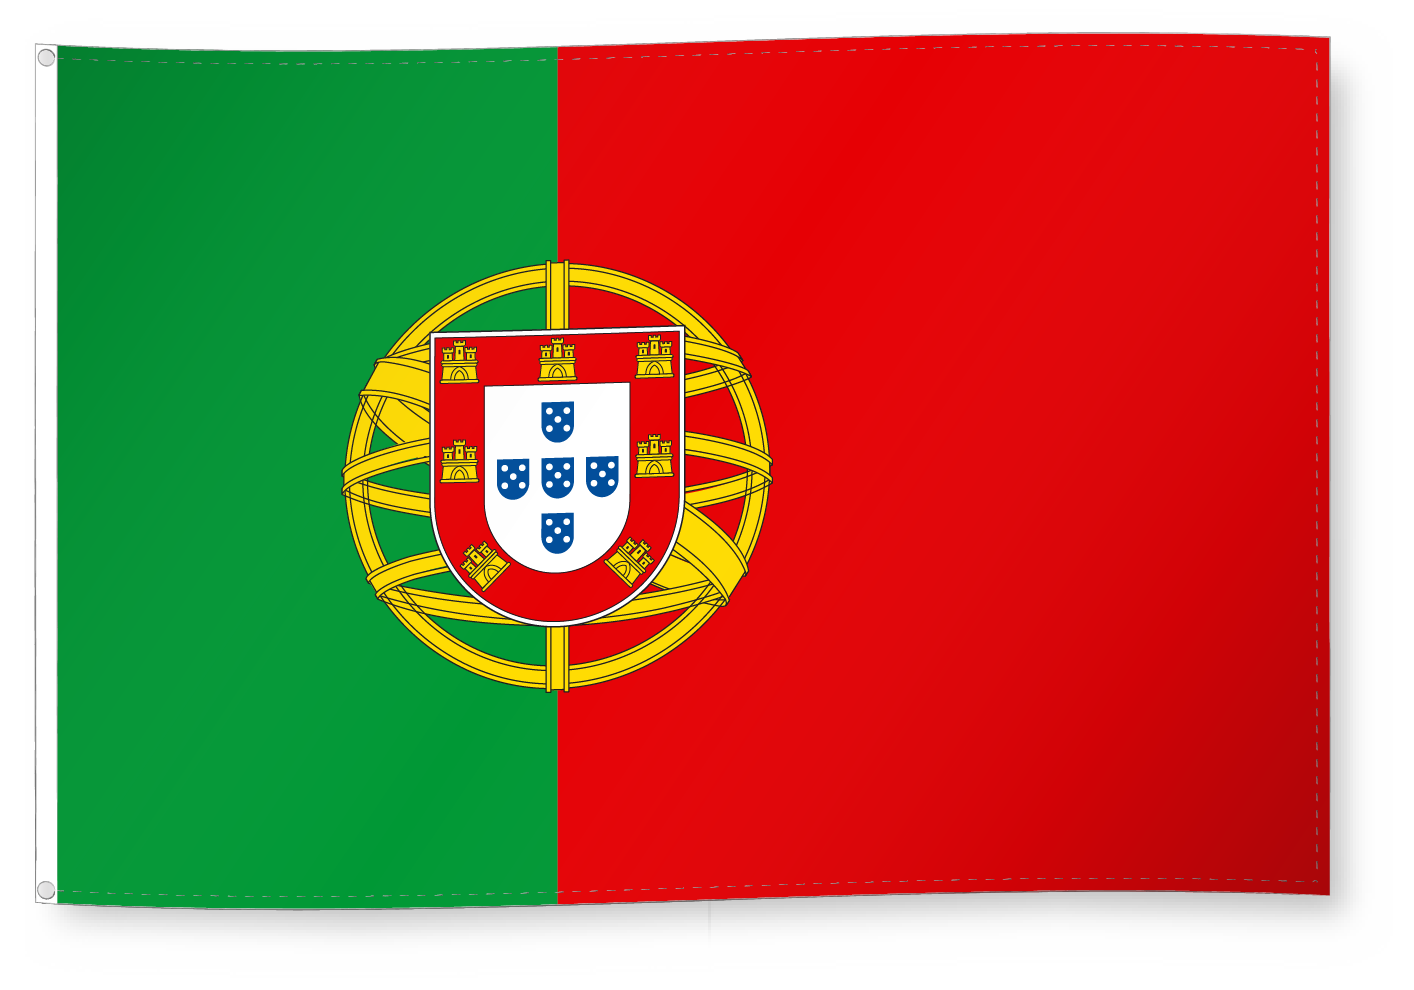 Oriflamme Drapeau Armoiries Drapeau Pour Decoration Portugal